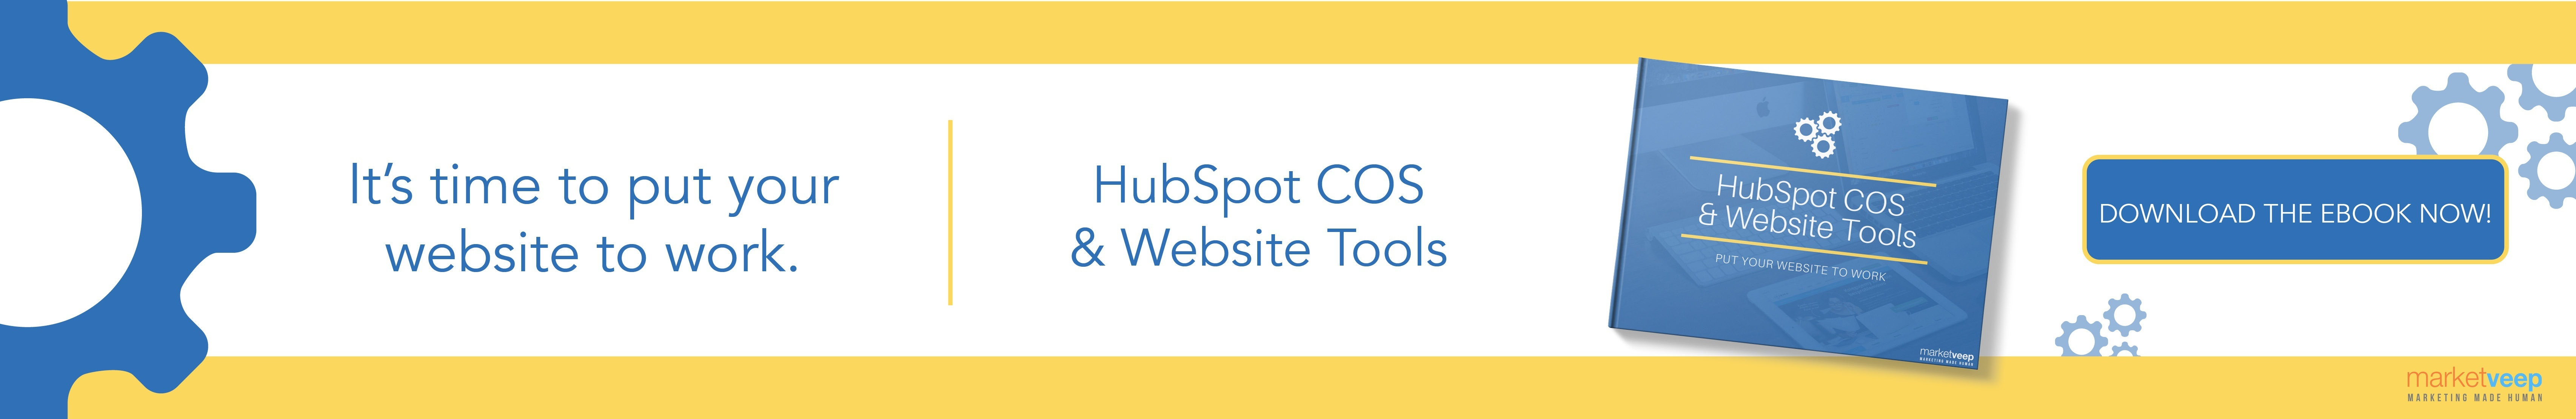 HubSpot COS and Website Tools